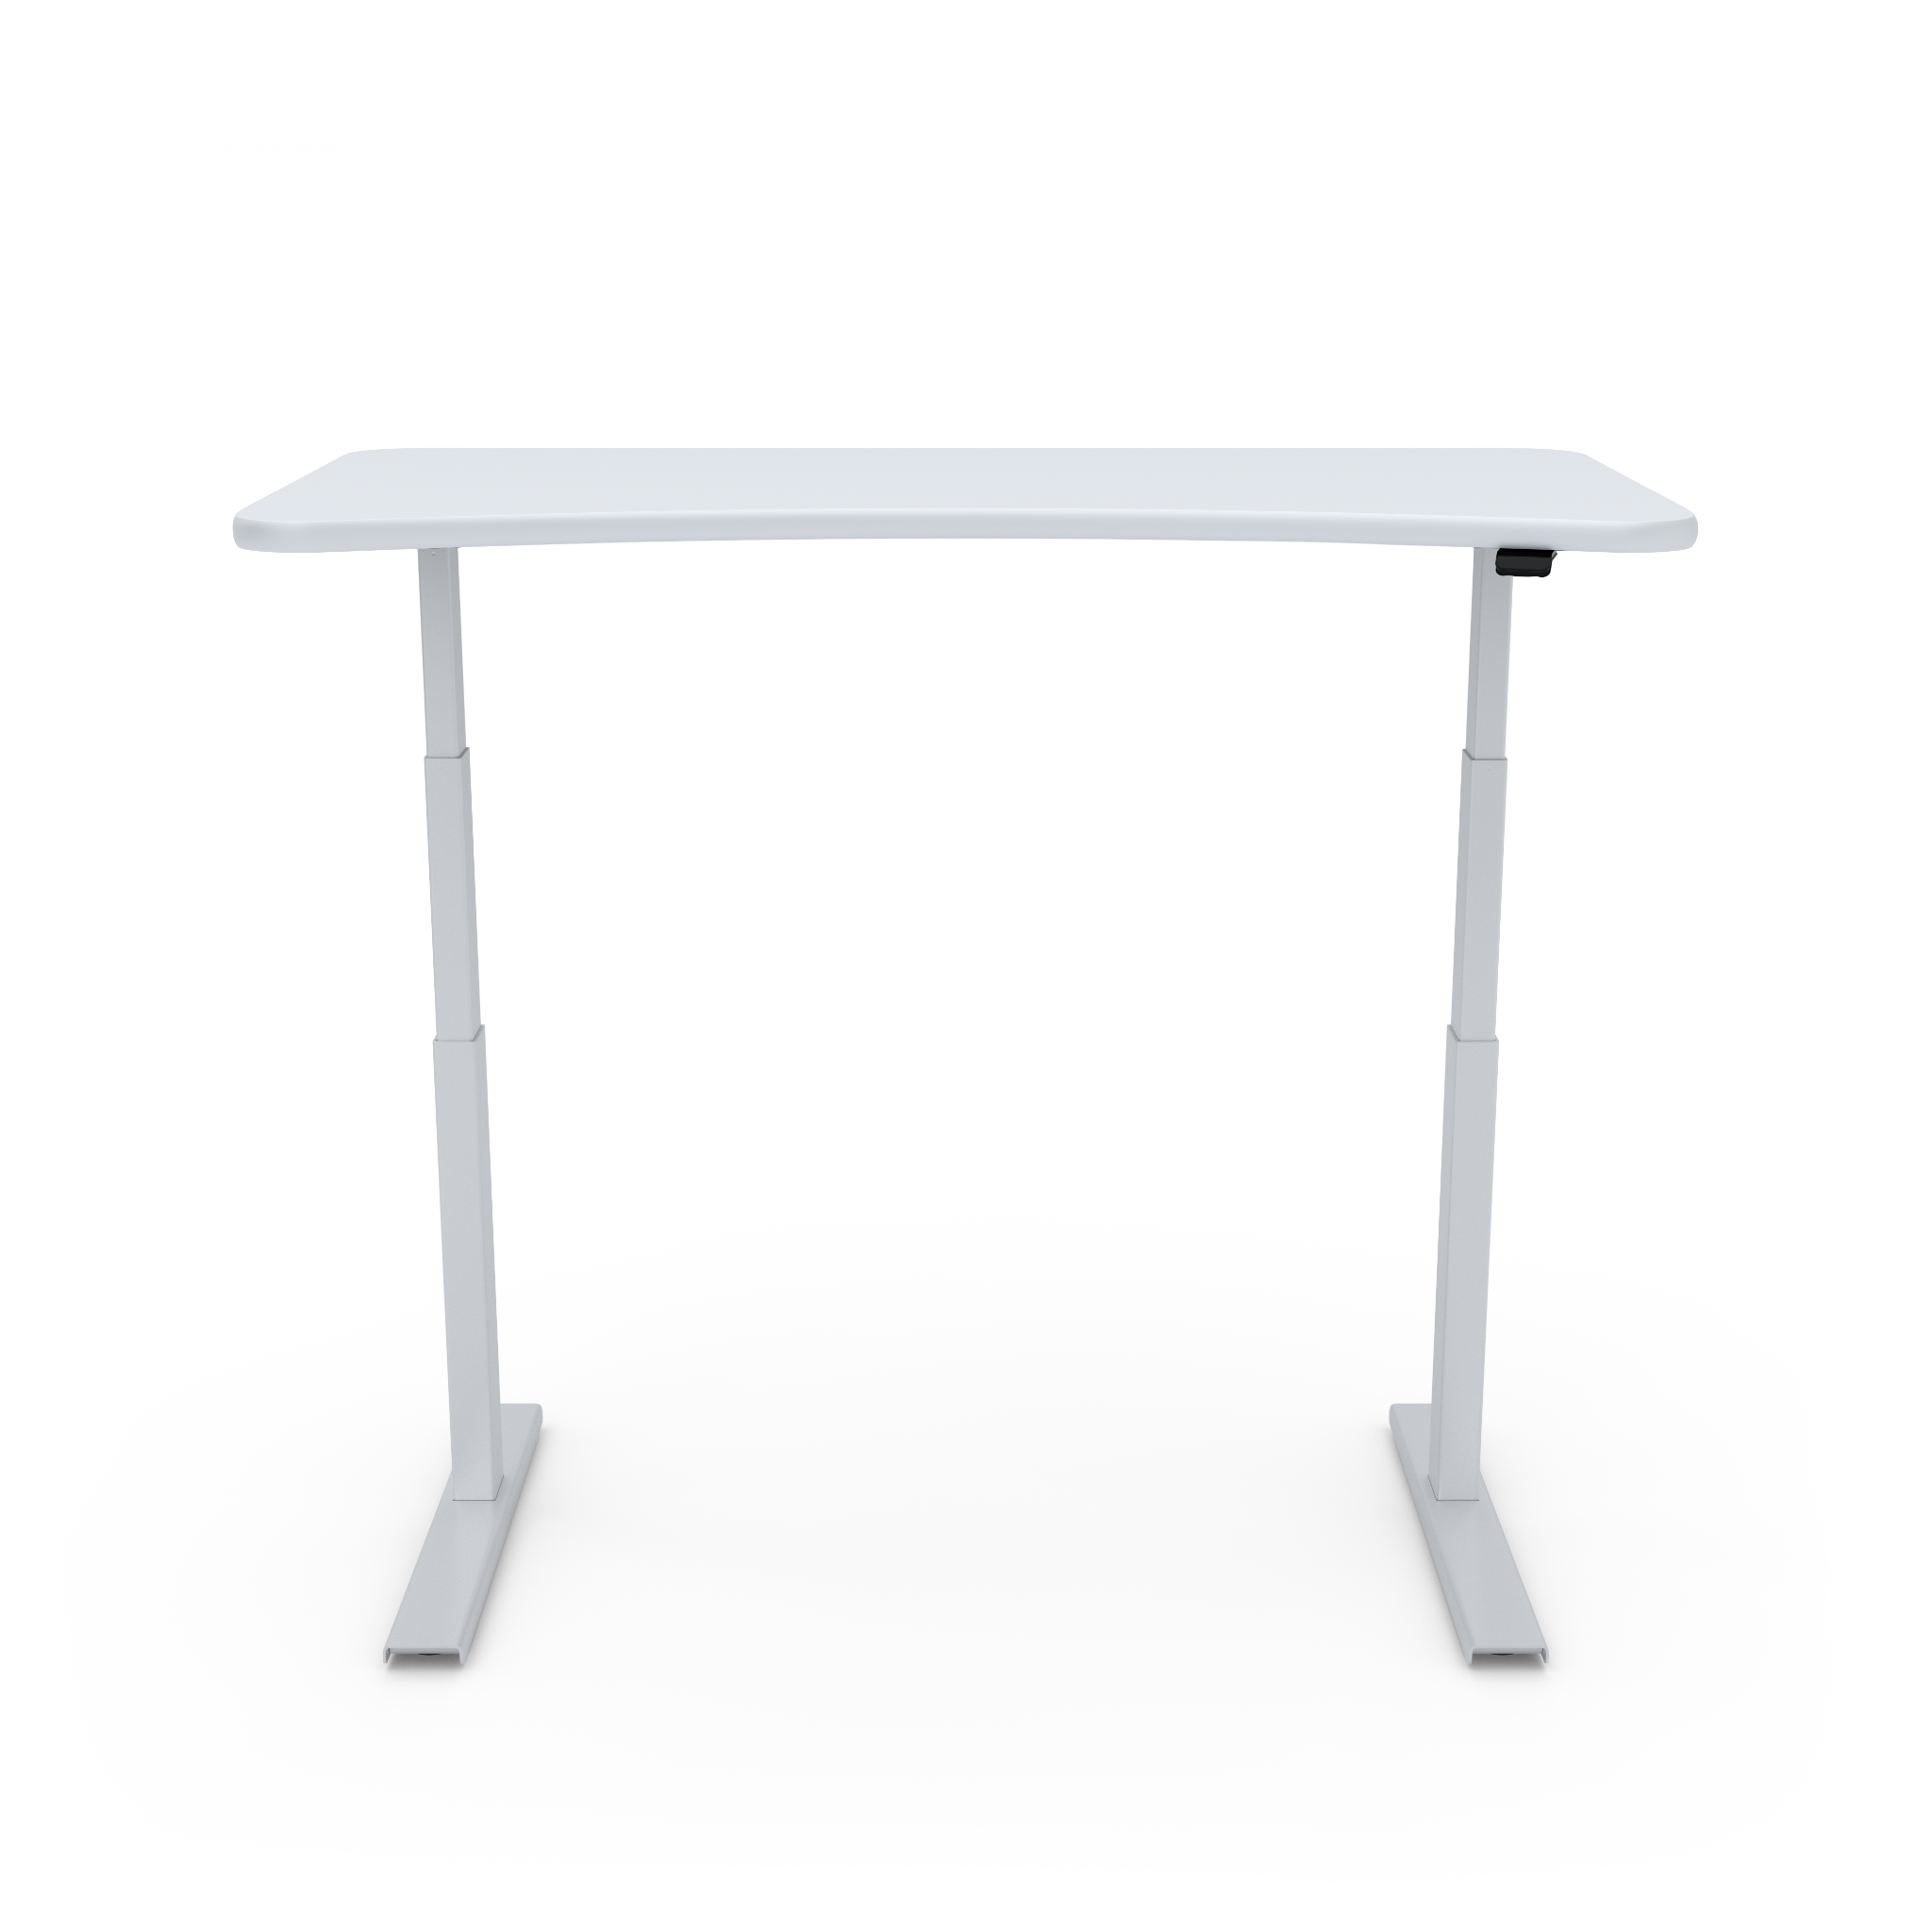 UPDESK Electric Lift Standing Desk - Standard White Top on White Frame **CLOSEOUT**